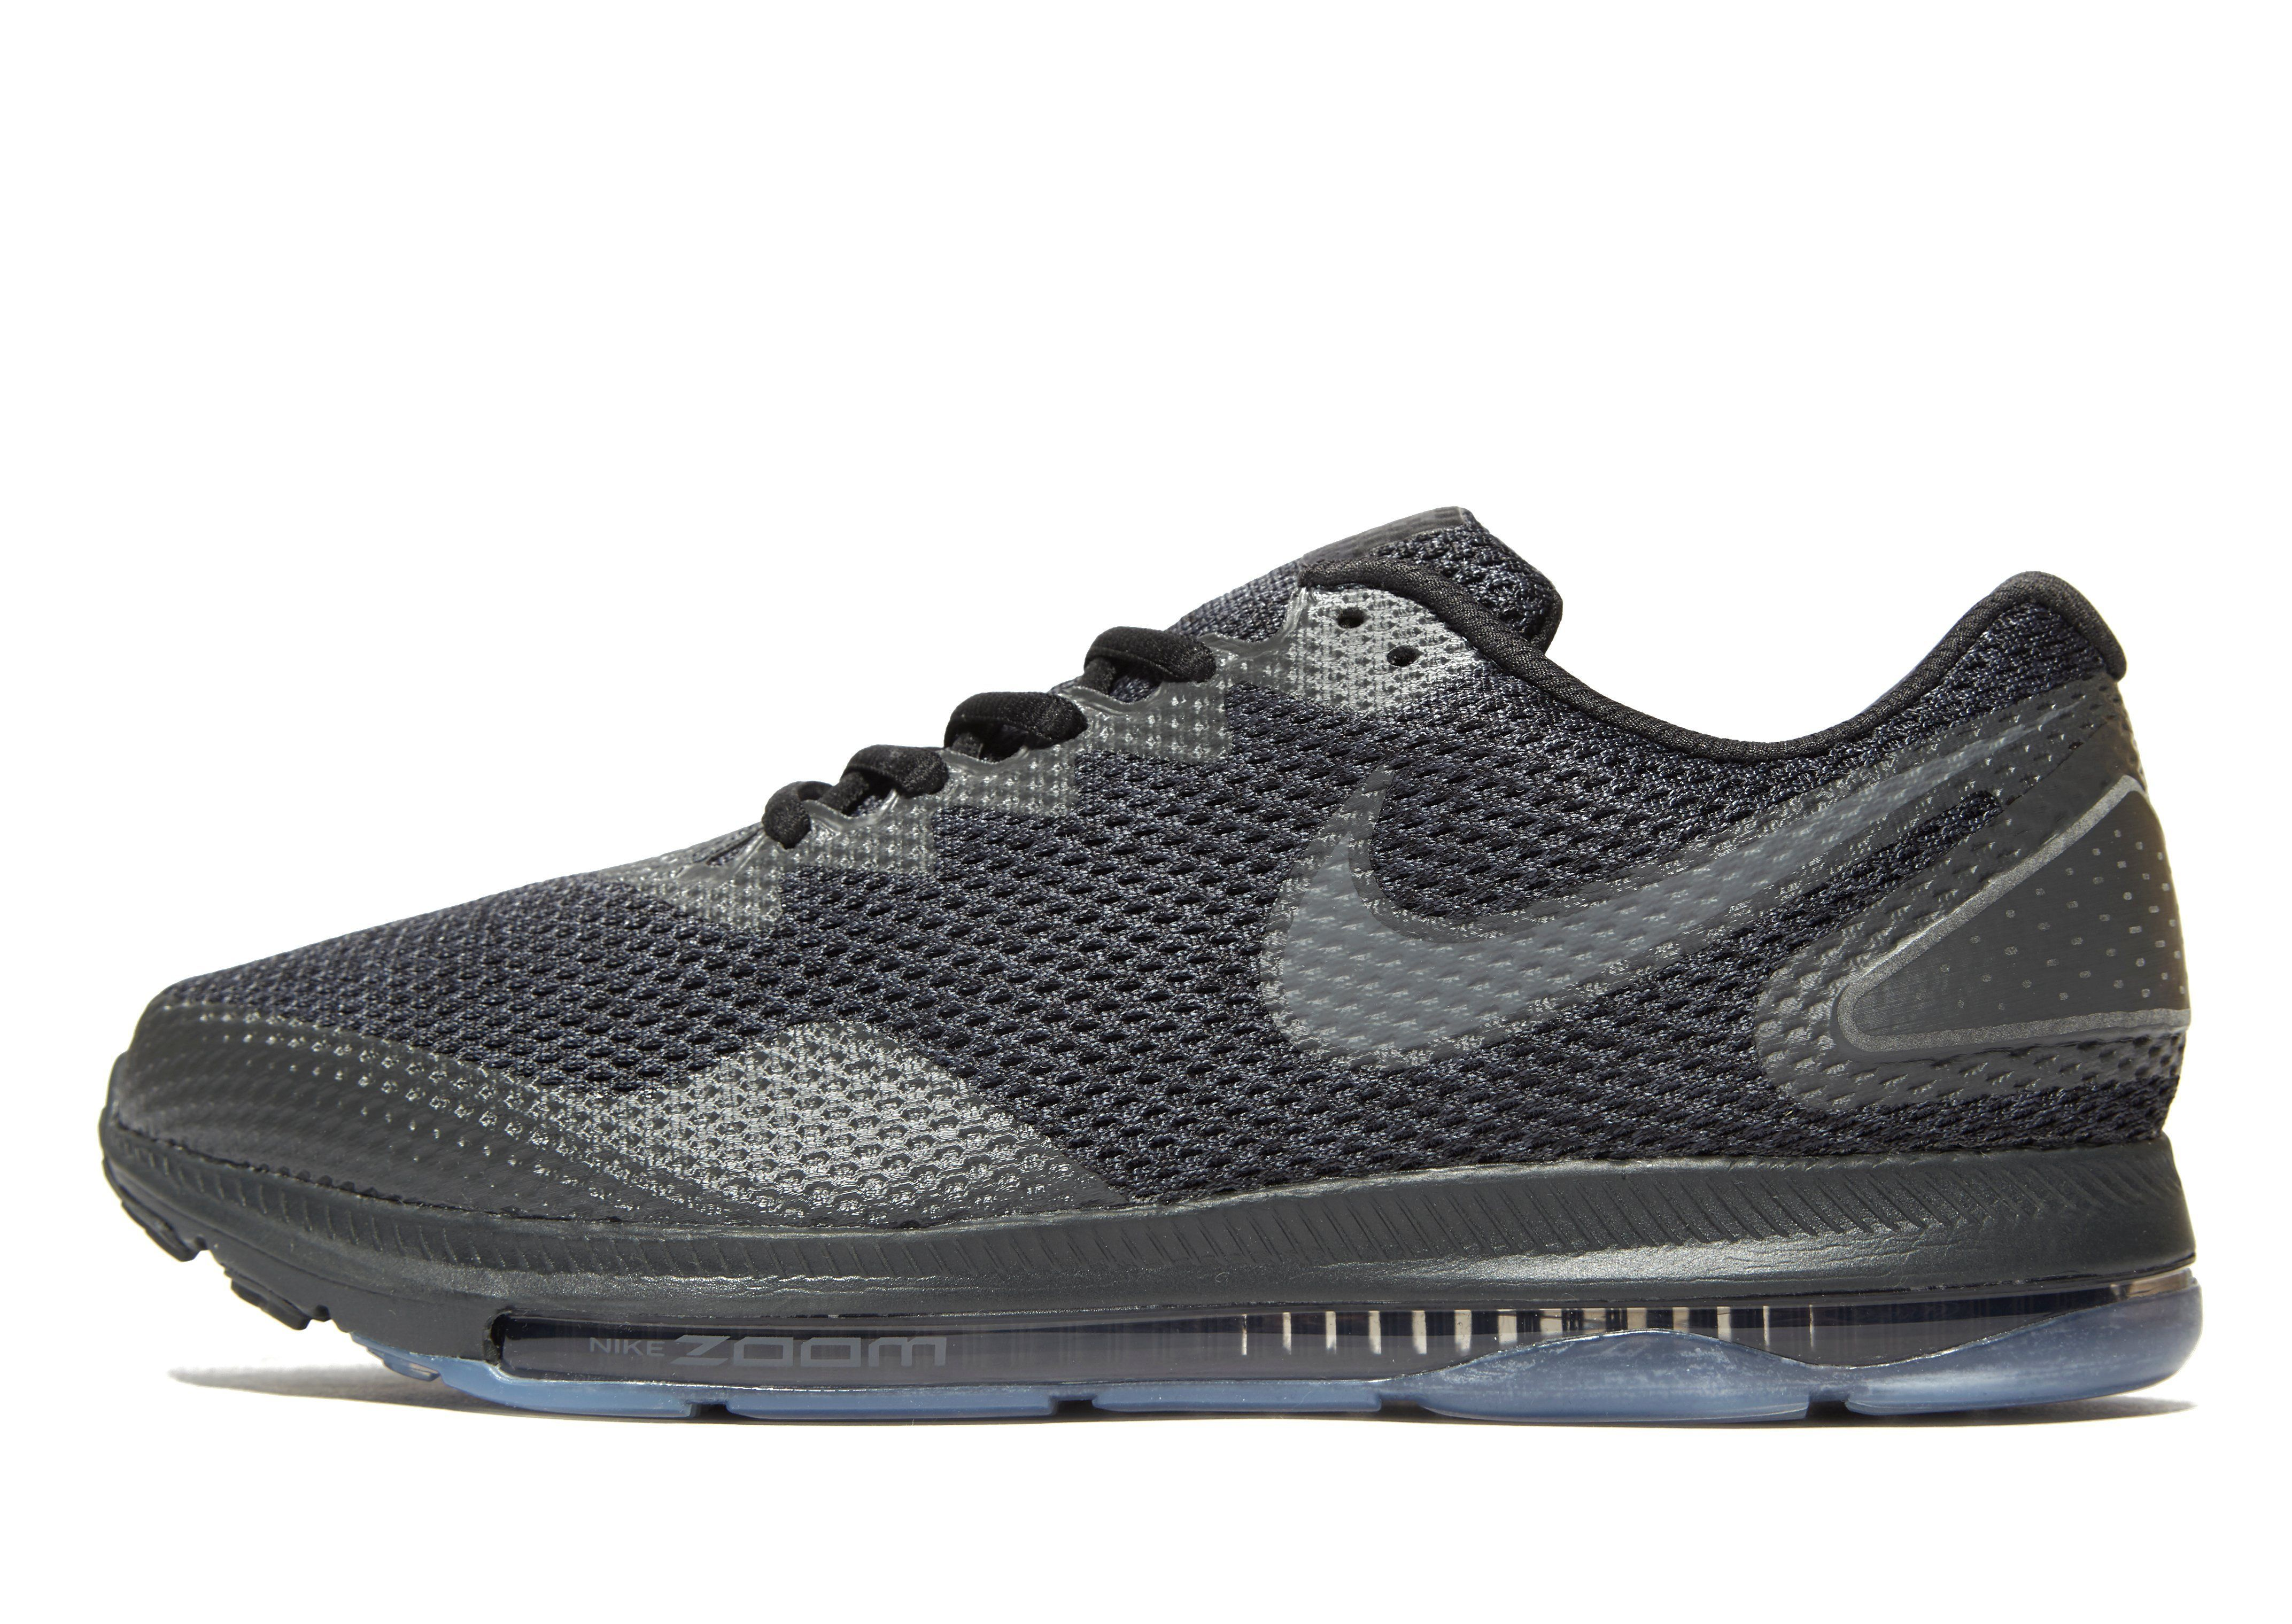 07e1f51bbe7c8 Nike Zoom All Out Low II - Shop online for Nike Zoom All Out Low II with JD  Sports